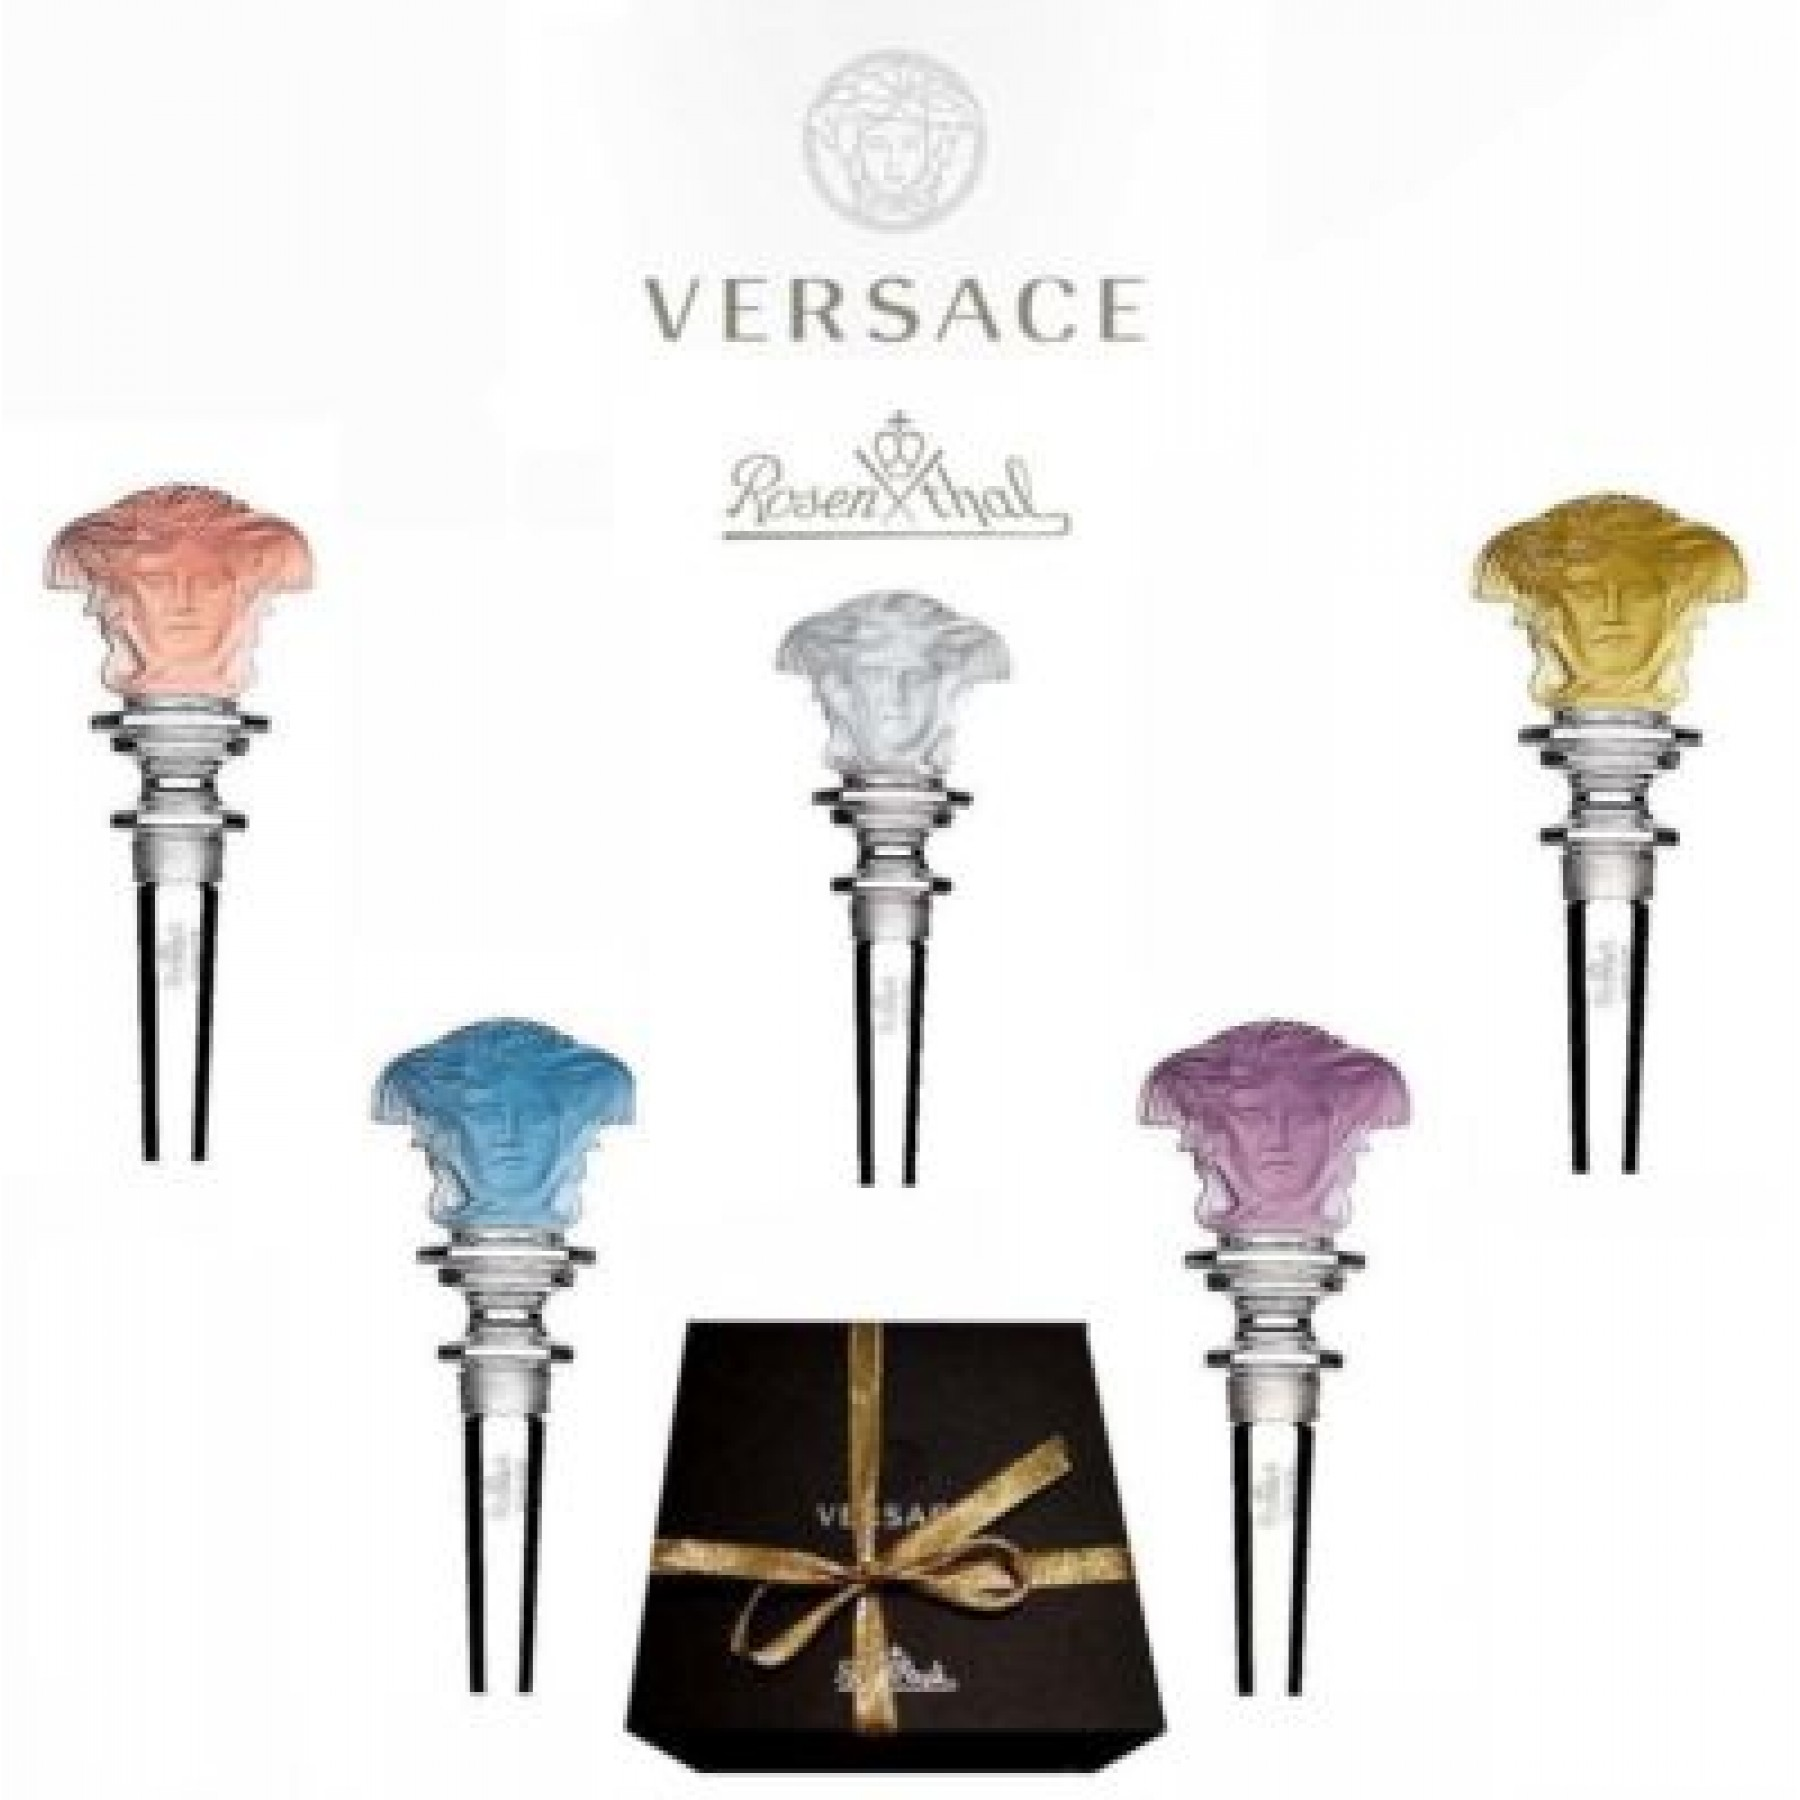 93c8127b3ad ROSENTHAL CRYSTAL BOTTLE STOPPER BY GIANNI VERSACE (White Iridescent  Lumiere)